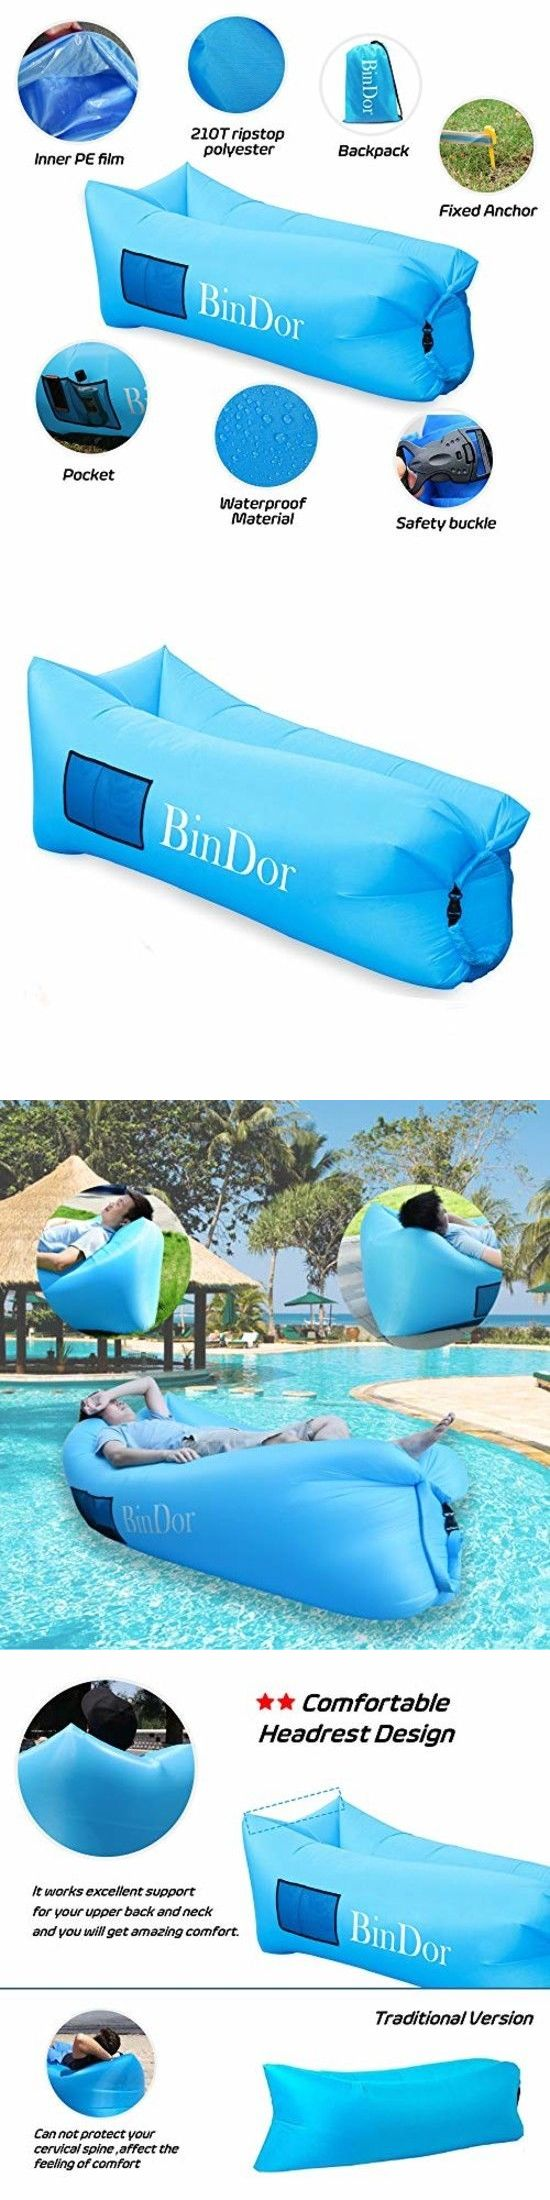 beanless sofa air chair white covers online bean bags and inflatables 48319 bindor inflatable lounger hammock bag couch lazy buy it now only 28 38 on ebay